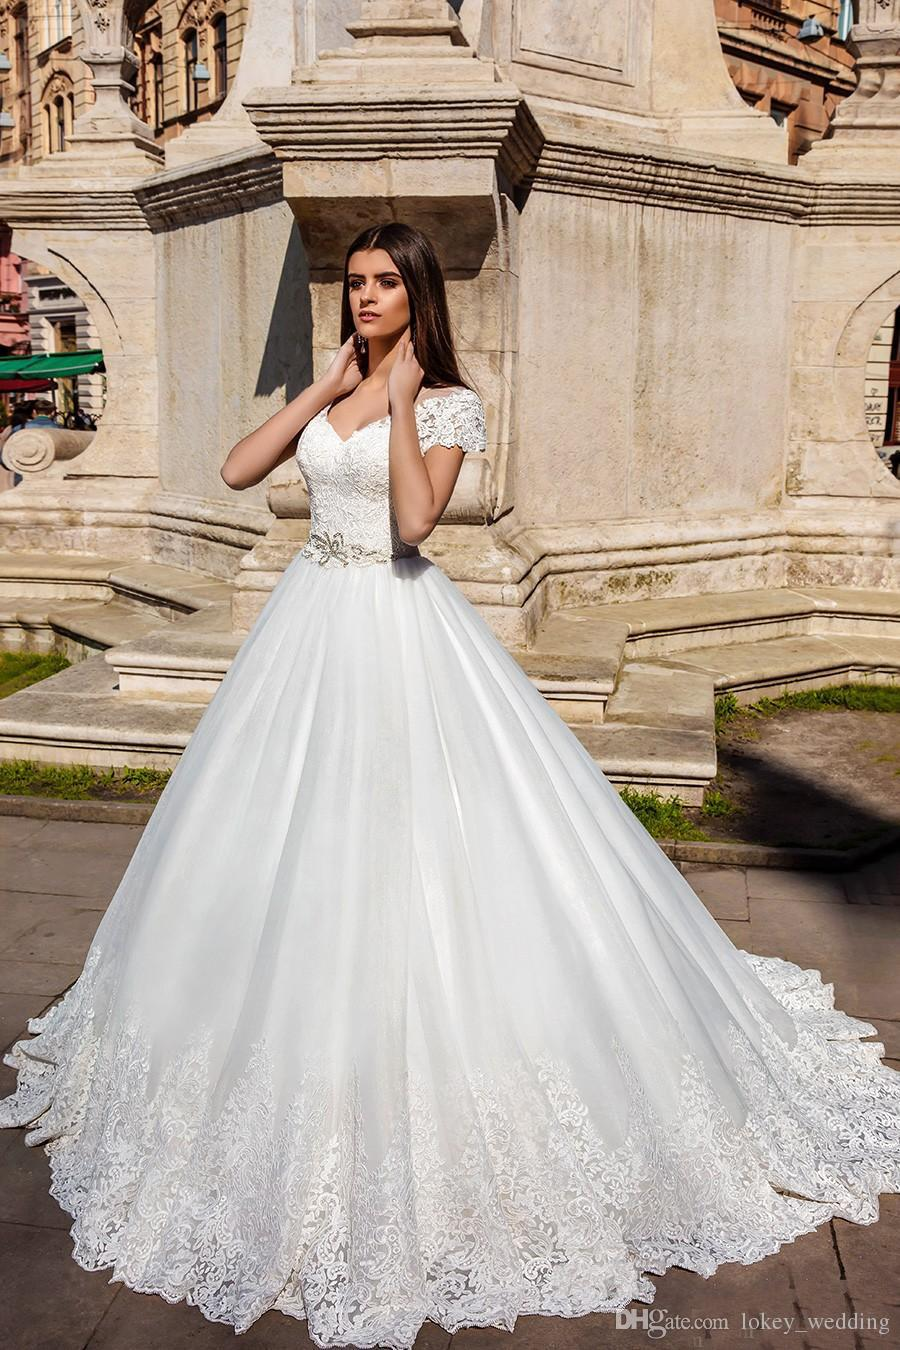 96324721b35d Modest Ball Gown Lace Wedding Dresses 2018 Applique With Beaded Sash Tulle  Illusion Back V-Neck Short Sleeves Bridal Gown With Court Train Short  Sleeves ...